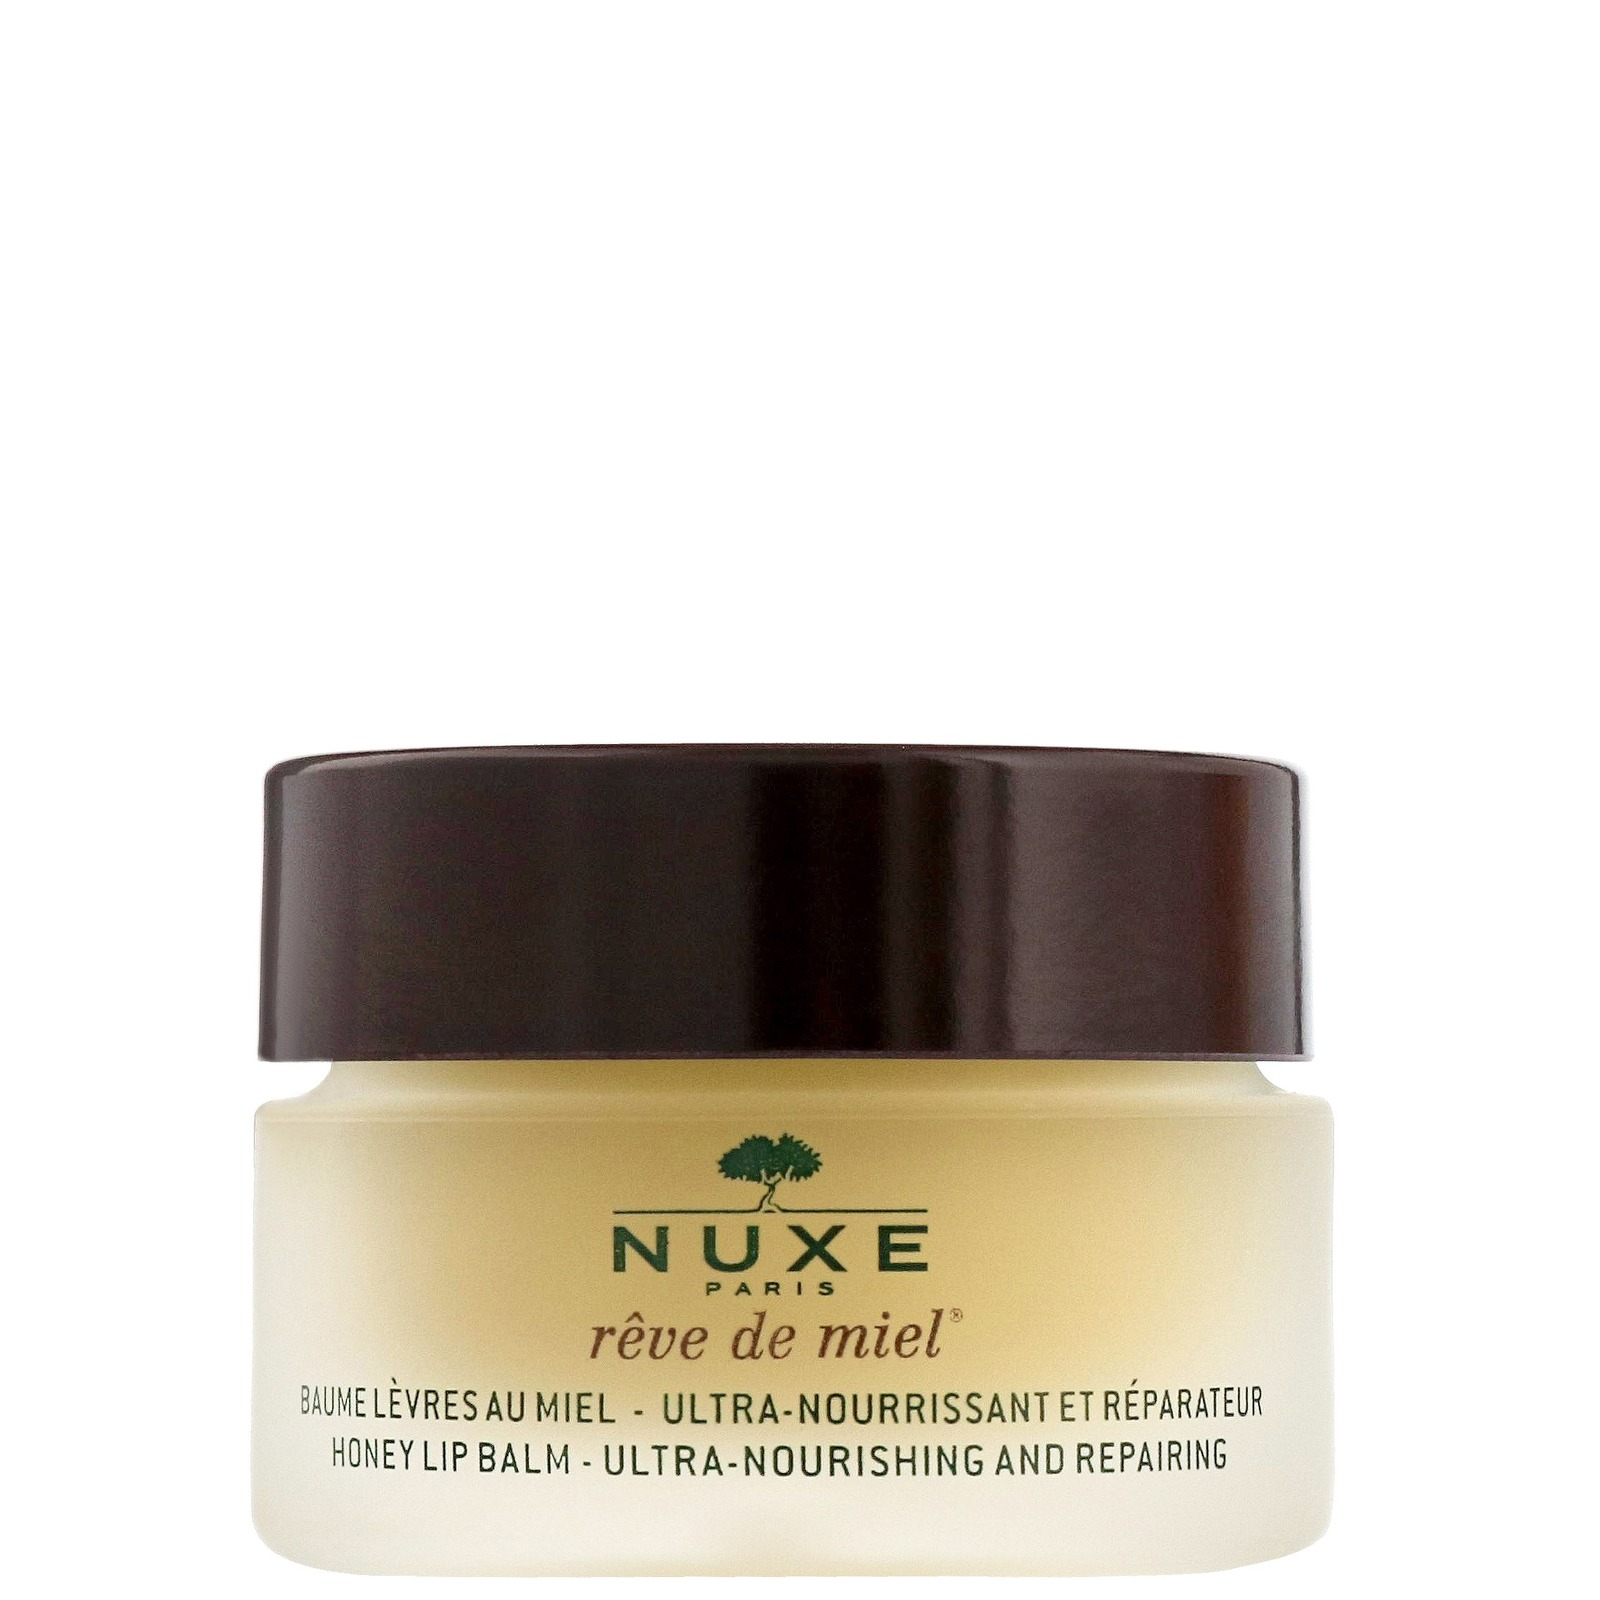 Nuxe Reve de Miel Ultra Nourishing and Repairing Honey Lip Balm 15g